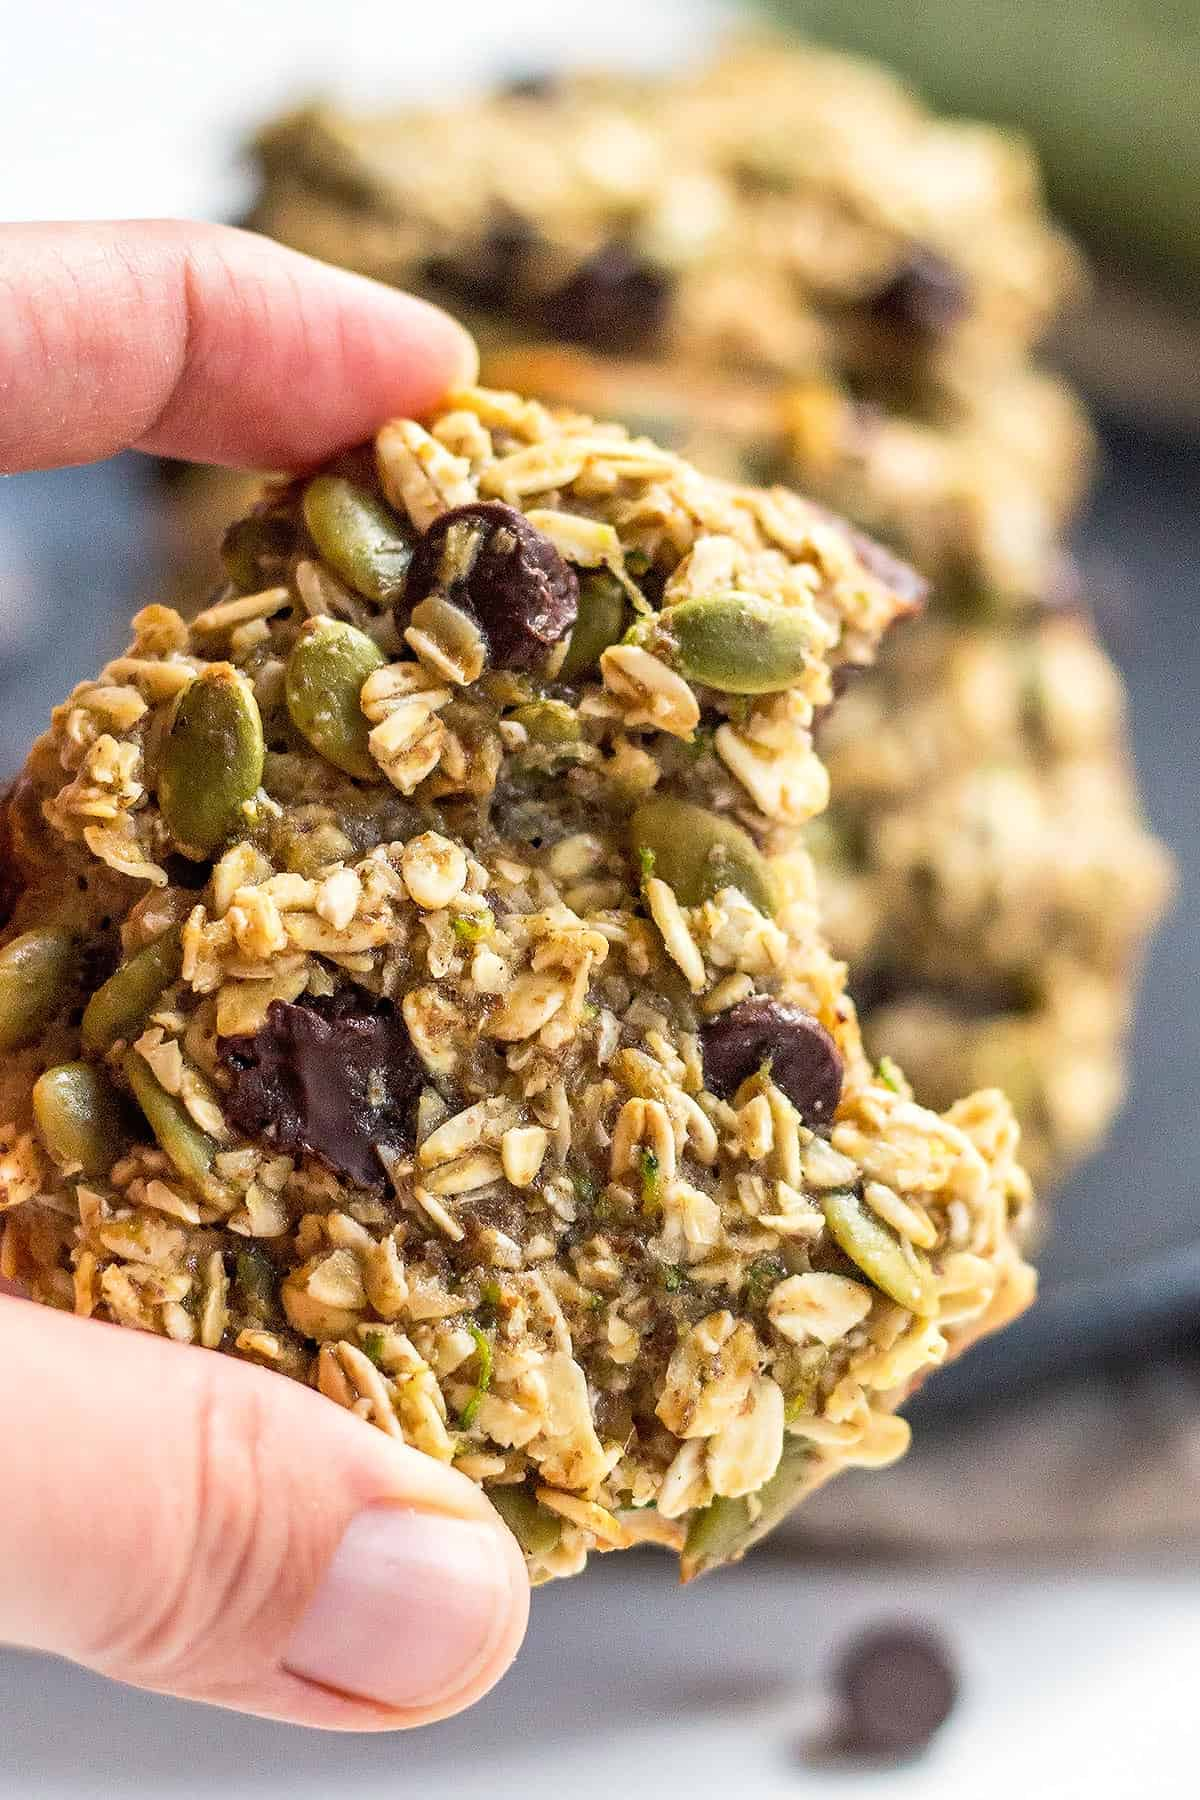 Hand holding Healthy Zucchini Cookies